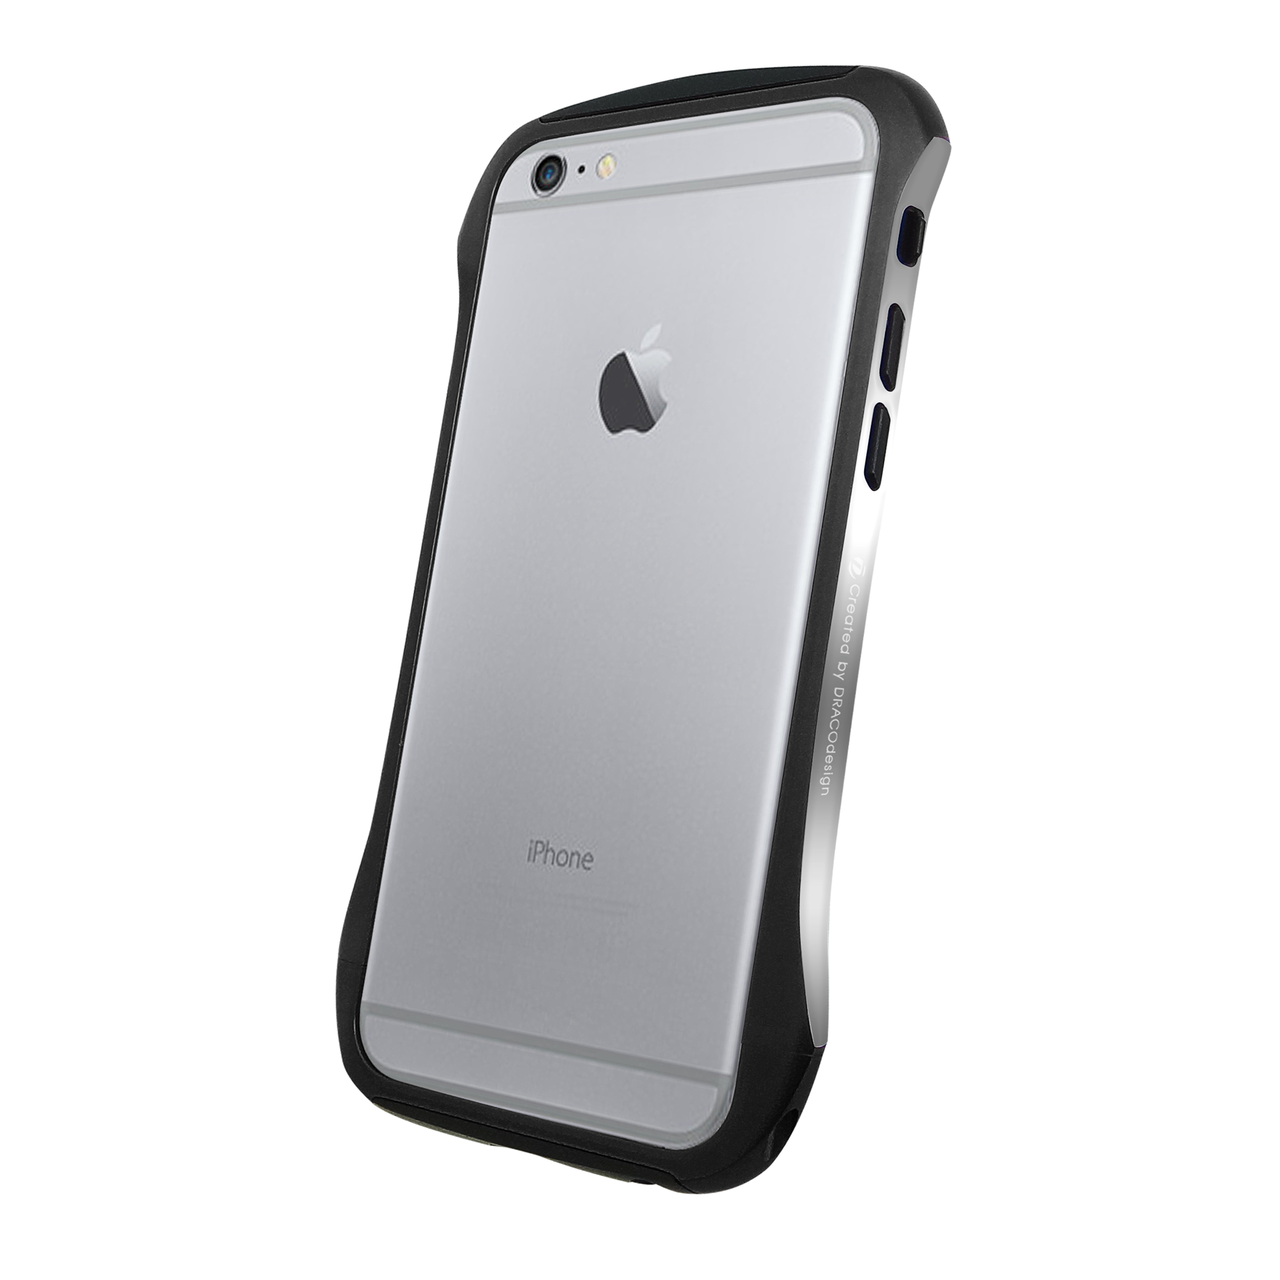 ducati apple iphone 6 6s official a6061 aluminium with touchpen strap bumper case cover. Black Bedroom Furniture Sets. Home Design Ideas